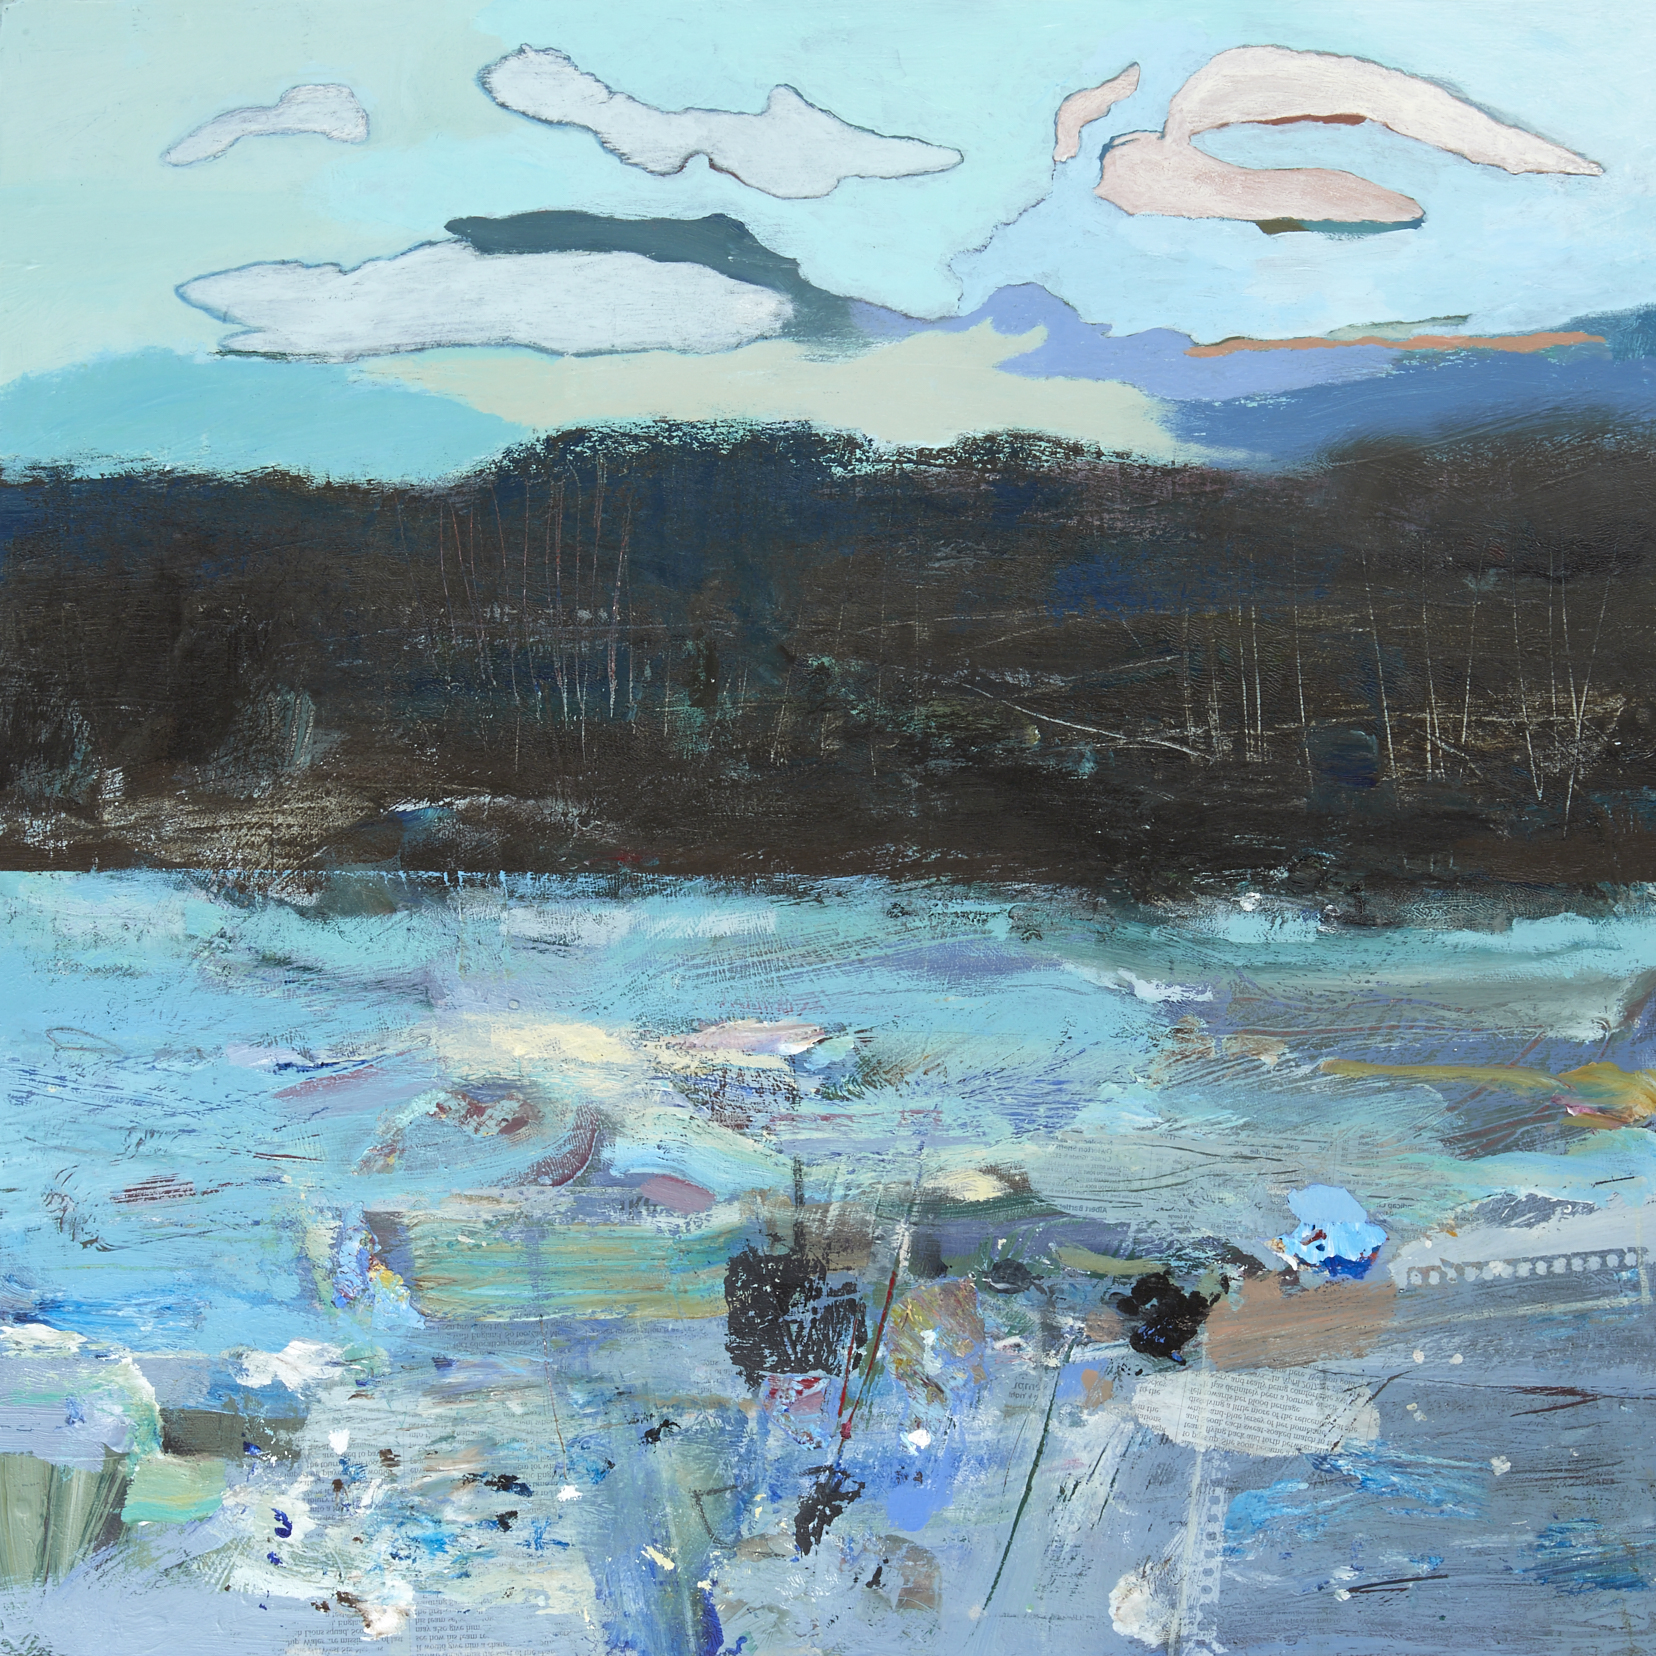 Roundhay Park: Cloud. Wood. Lake - Acrylic on board